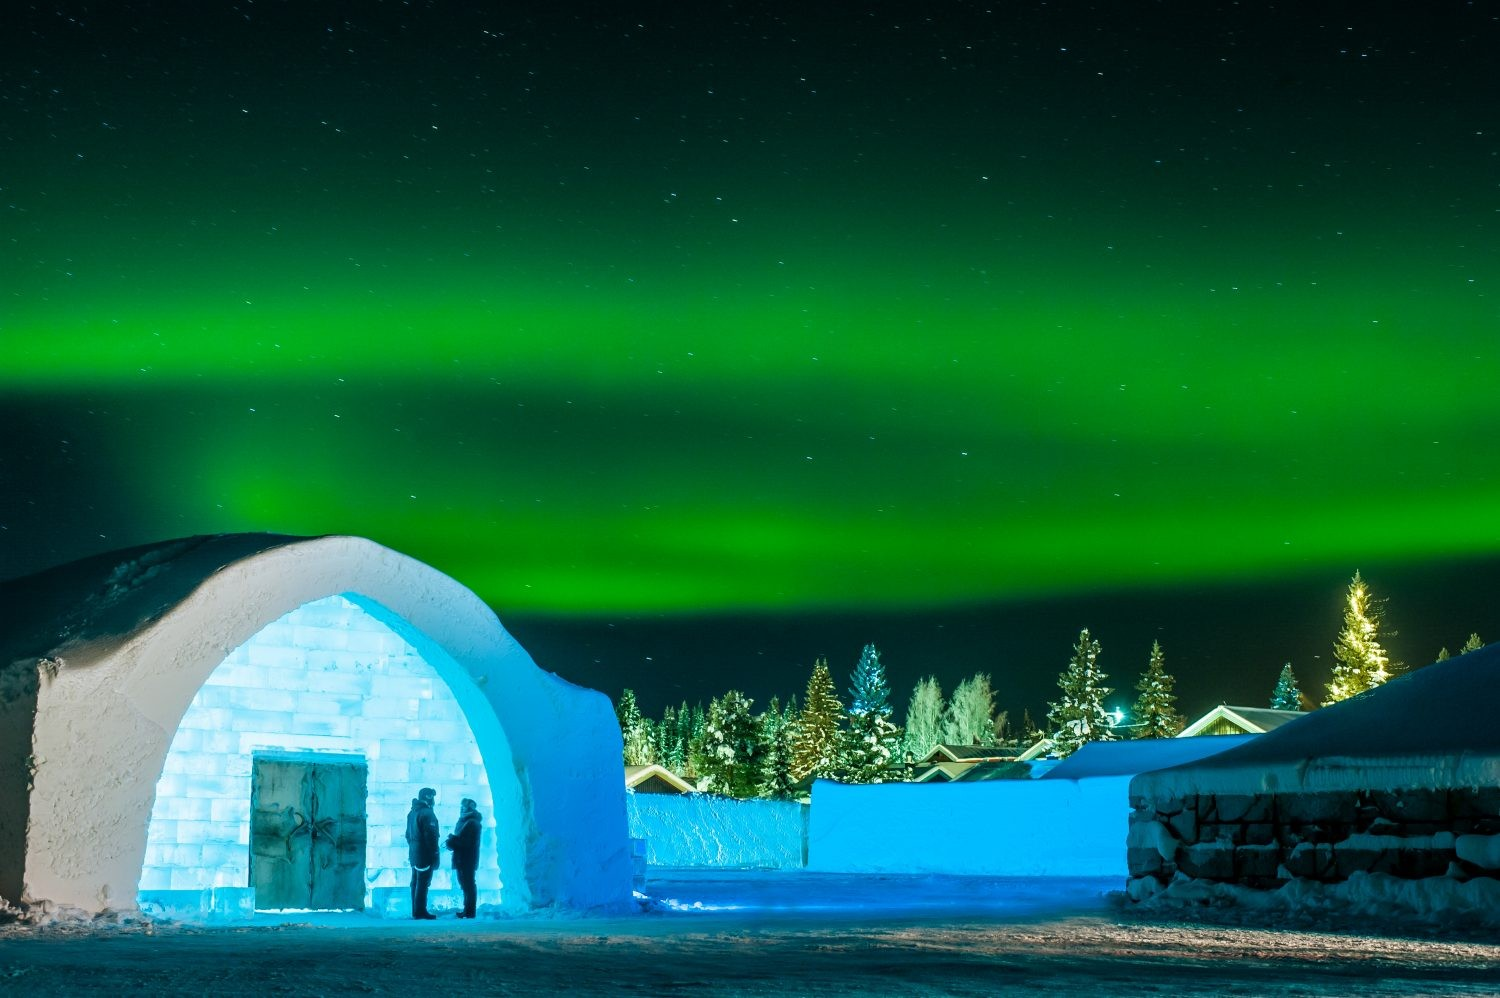 The Northern Lights appear over the ice hotel. Credit: Asaf Kliger